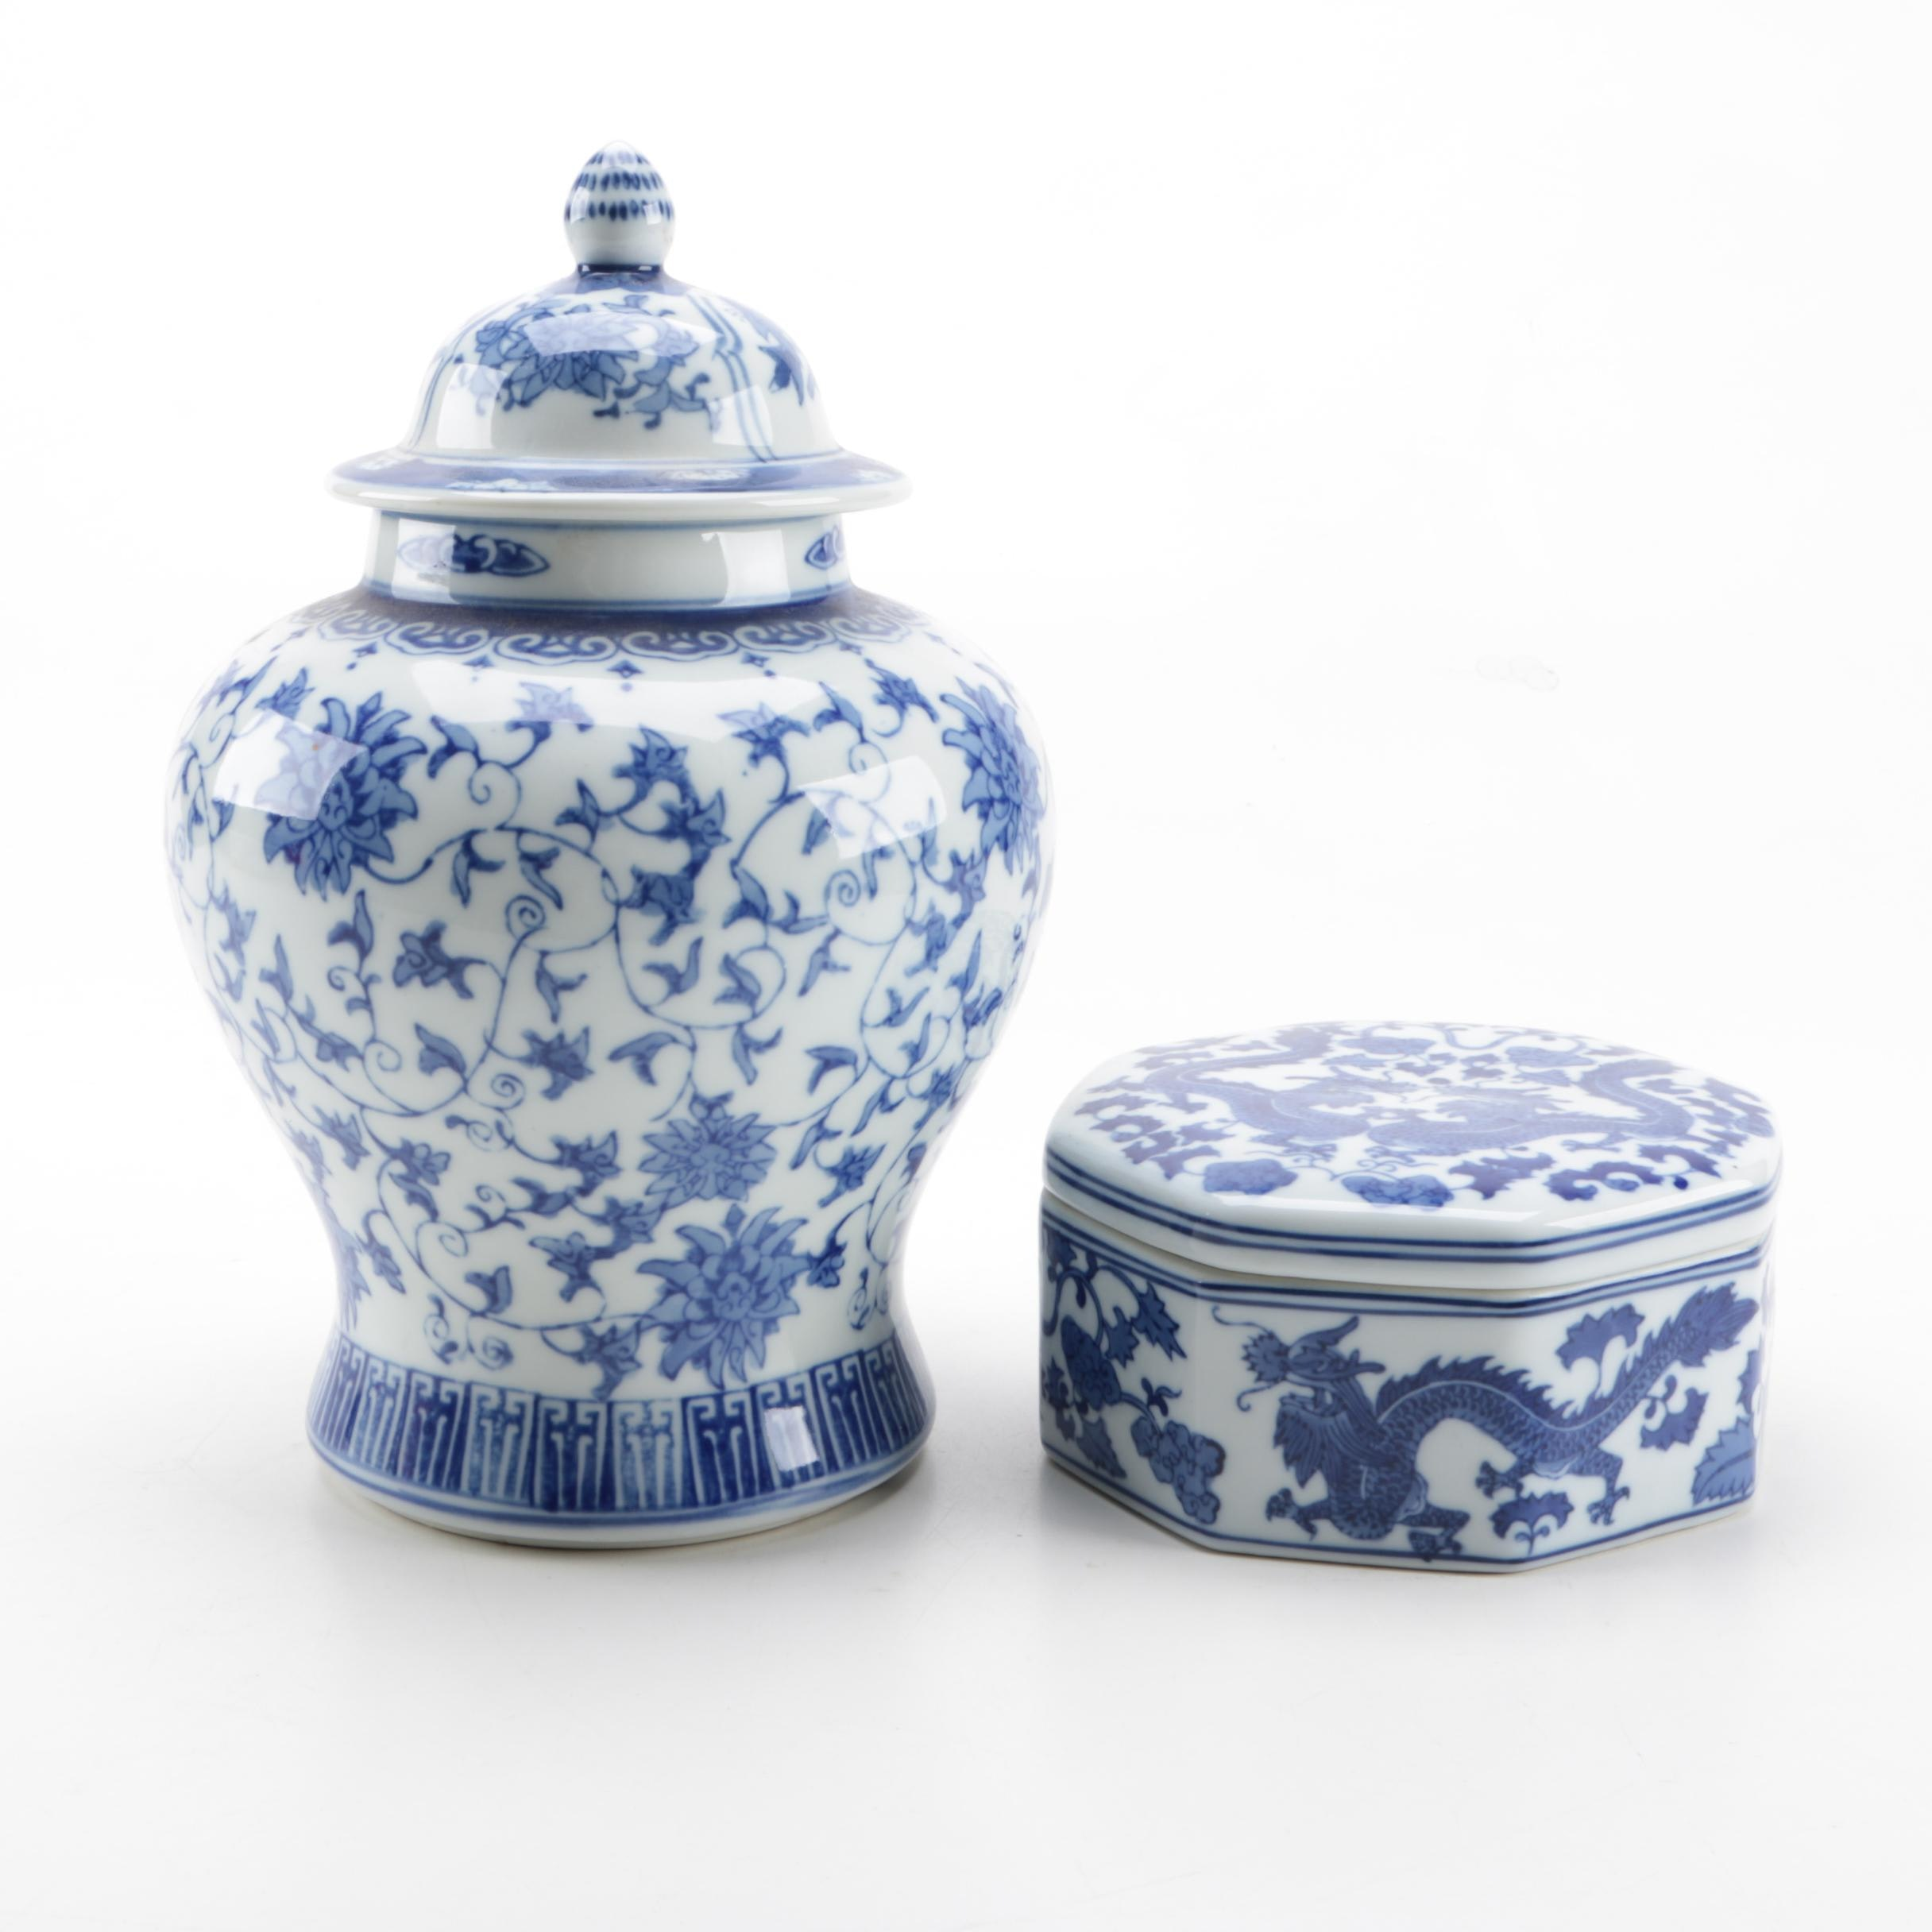 Blue and White Ceramic Ginger Jar and Trinket Box